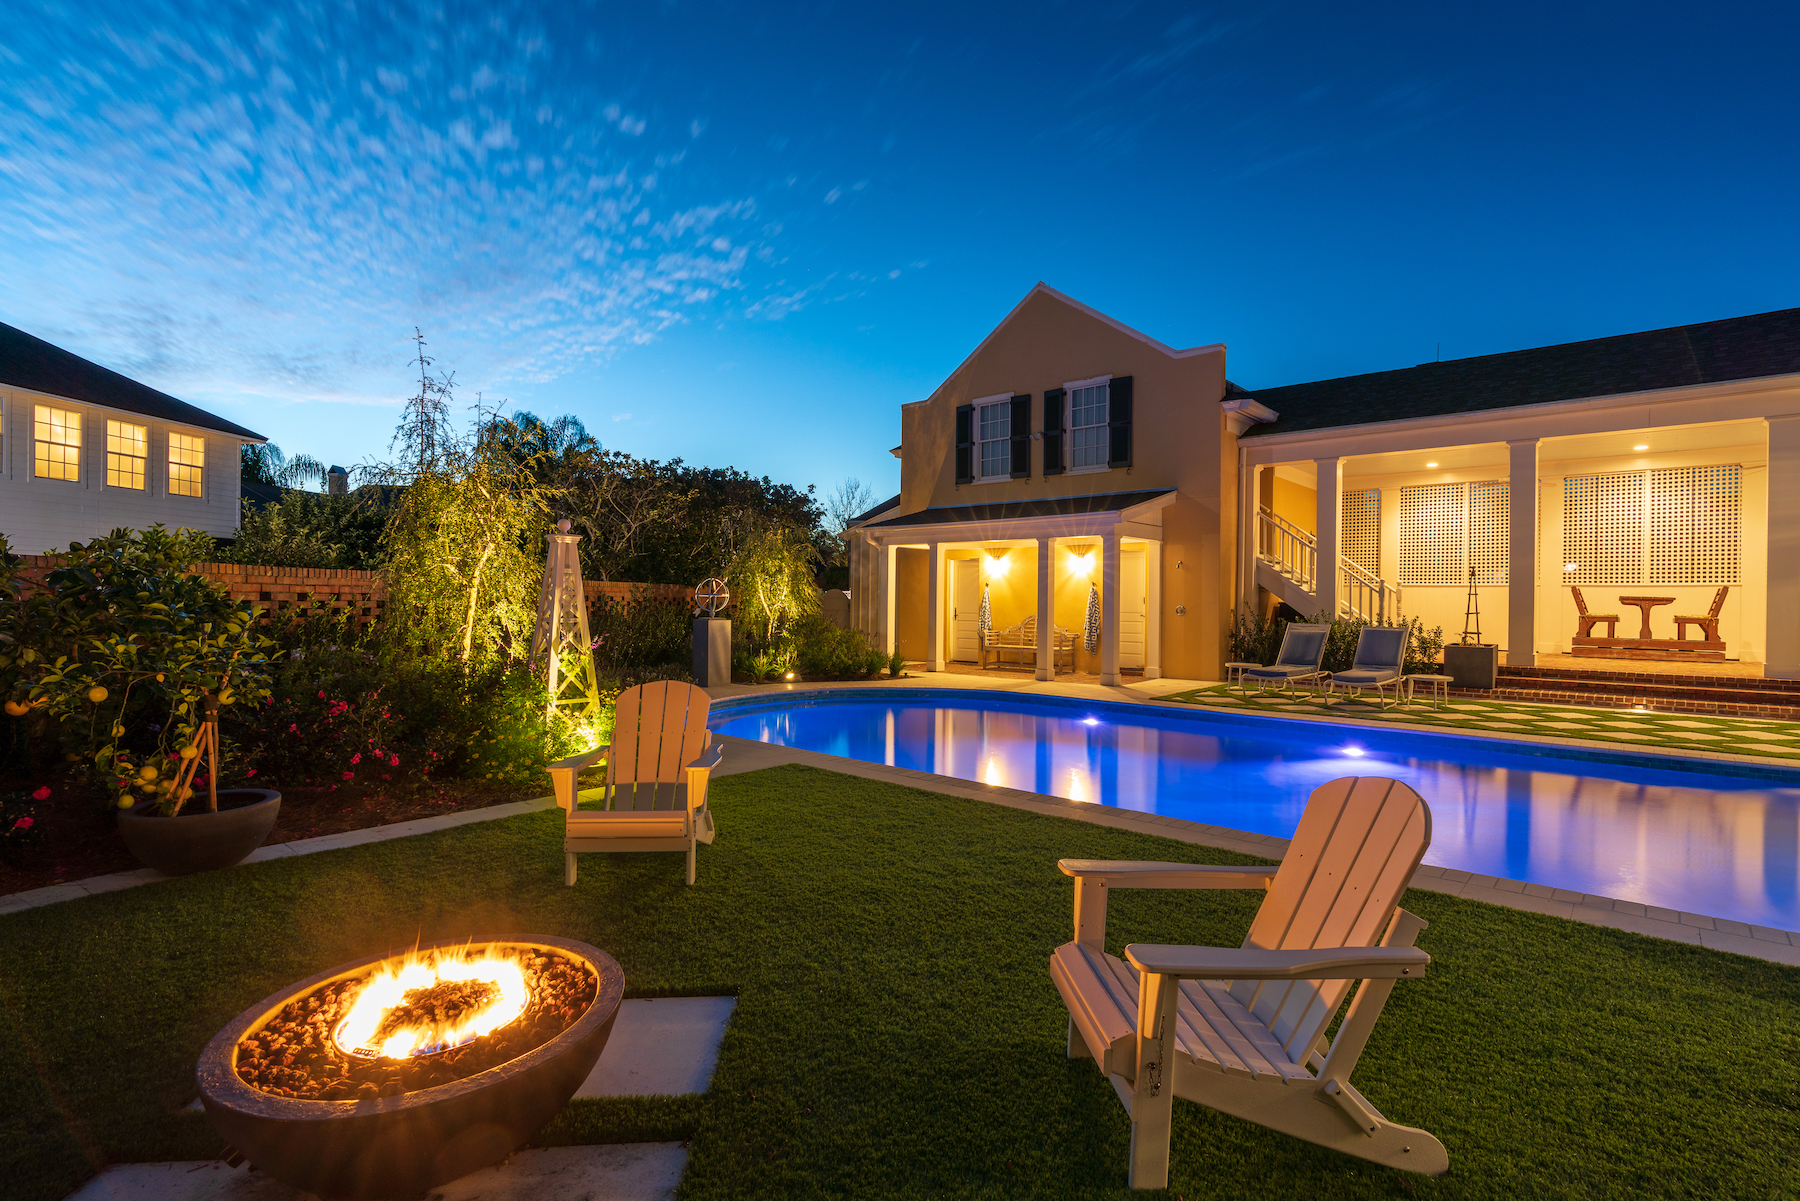 Artificial turf, pool and fire bowl